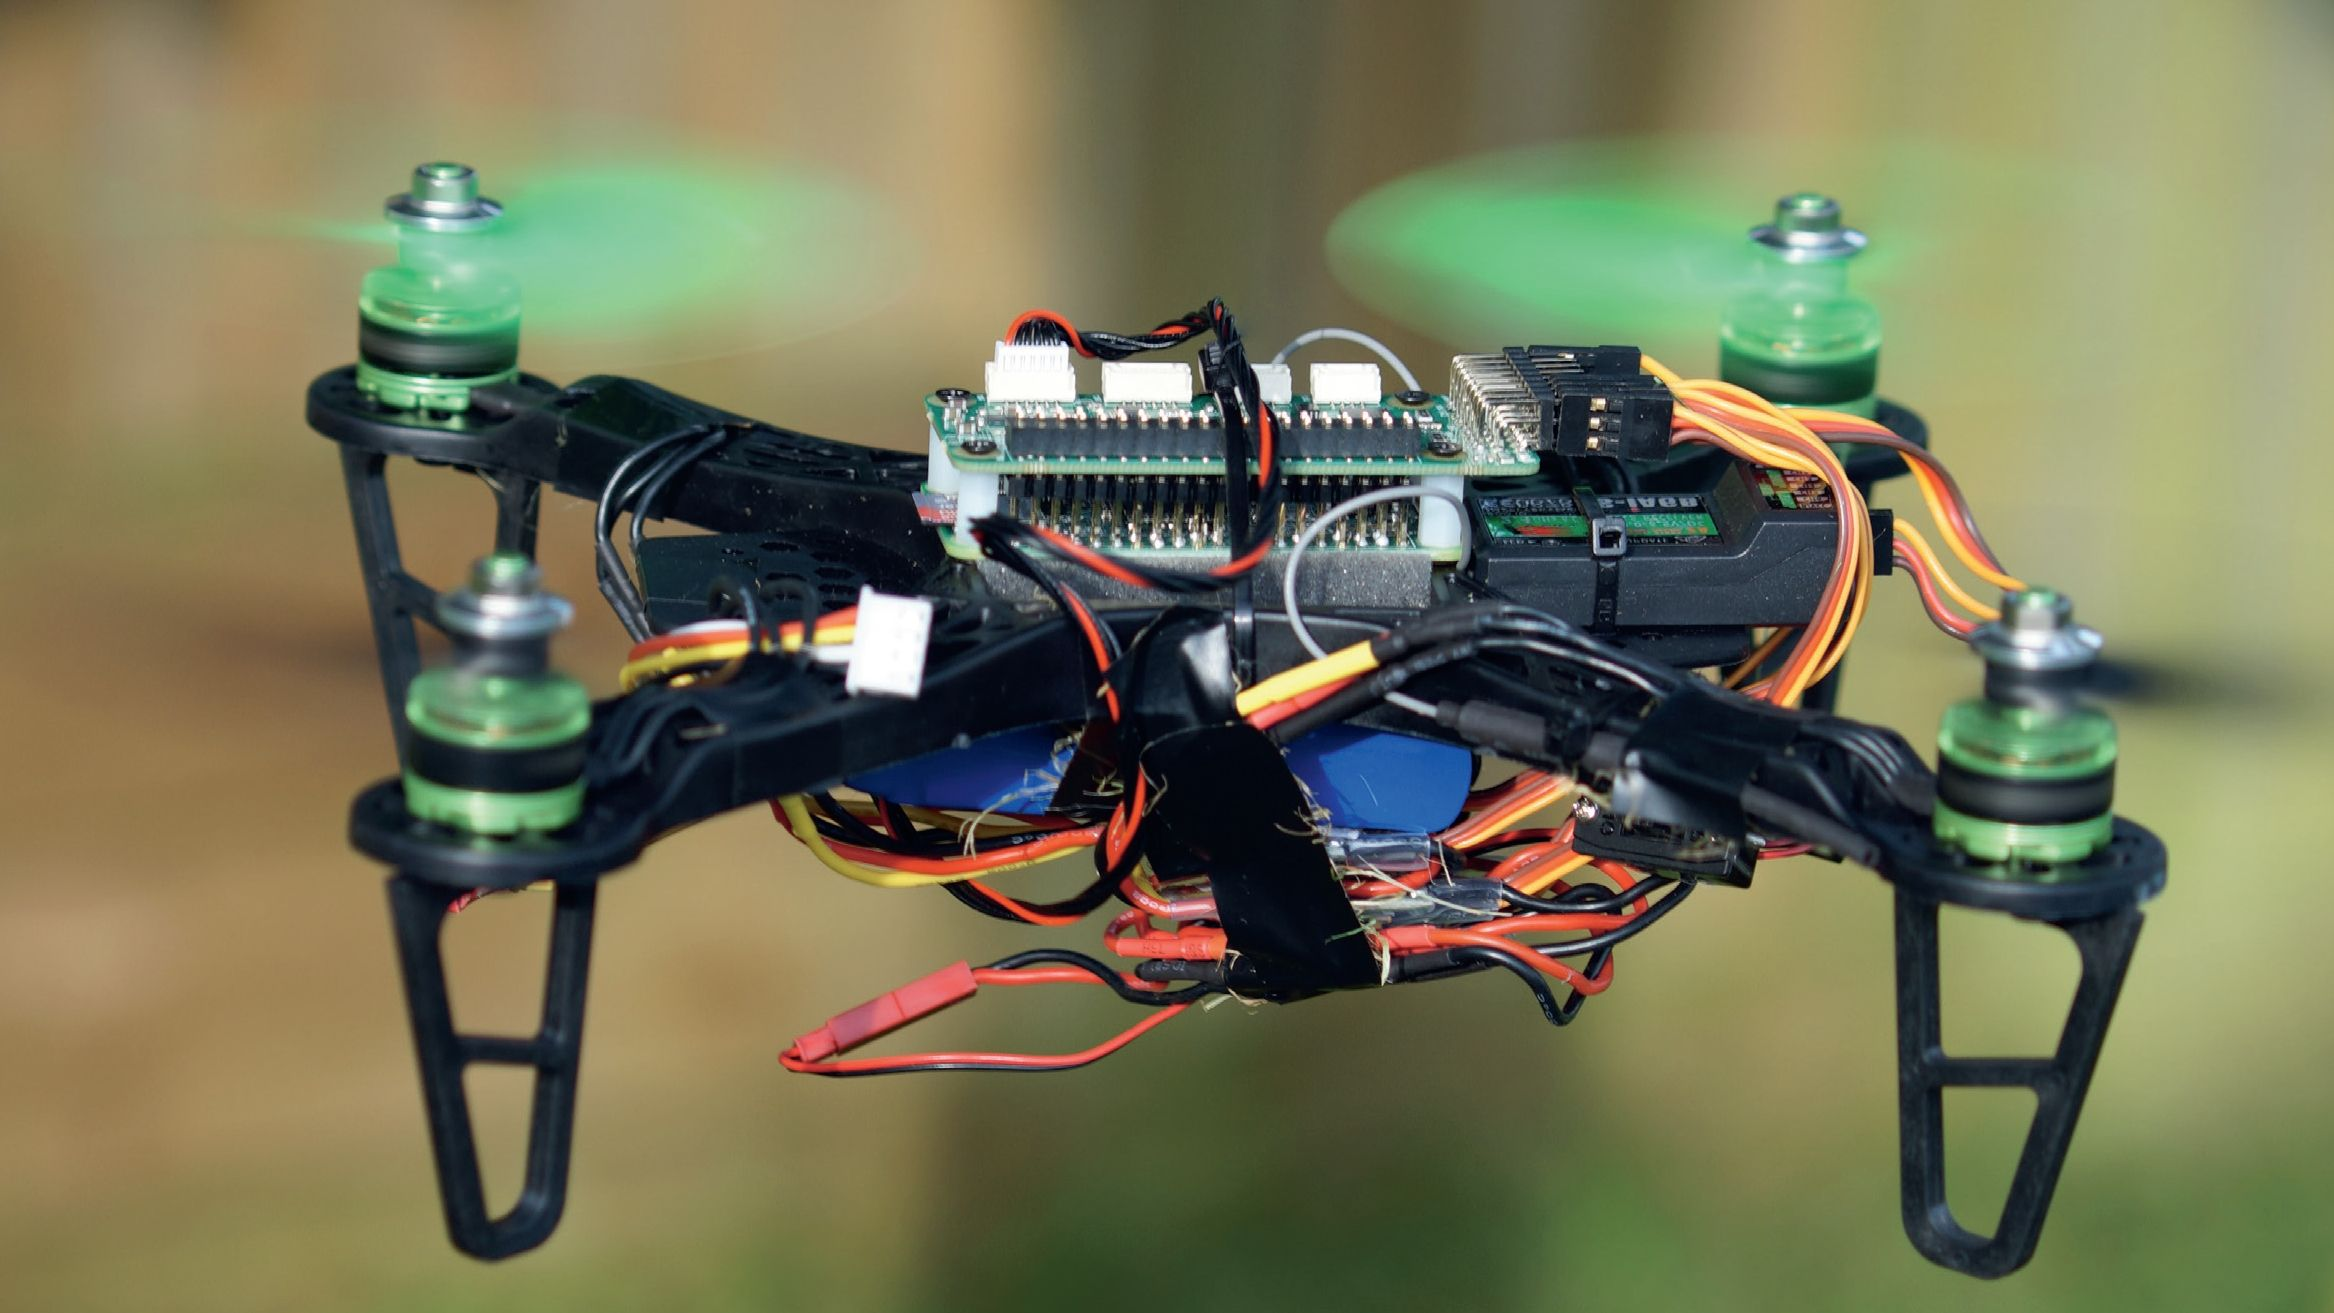 How to build your own drone | Arduino | Build your own drone